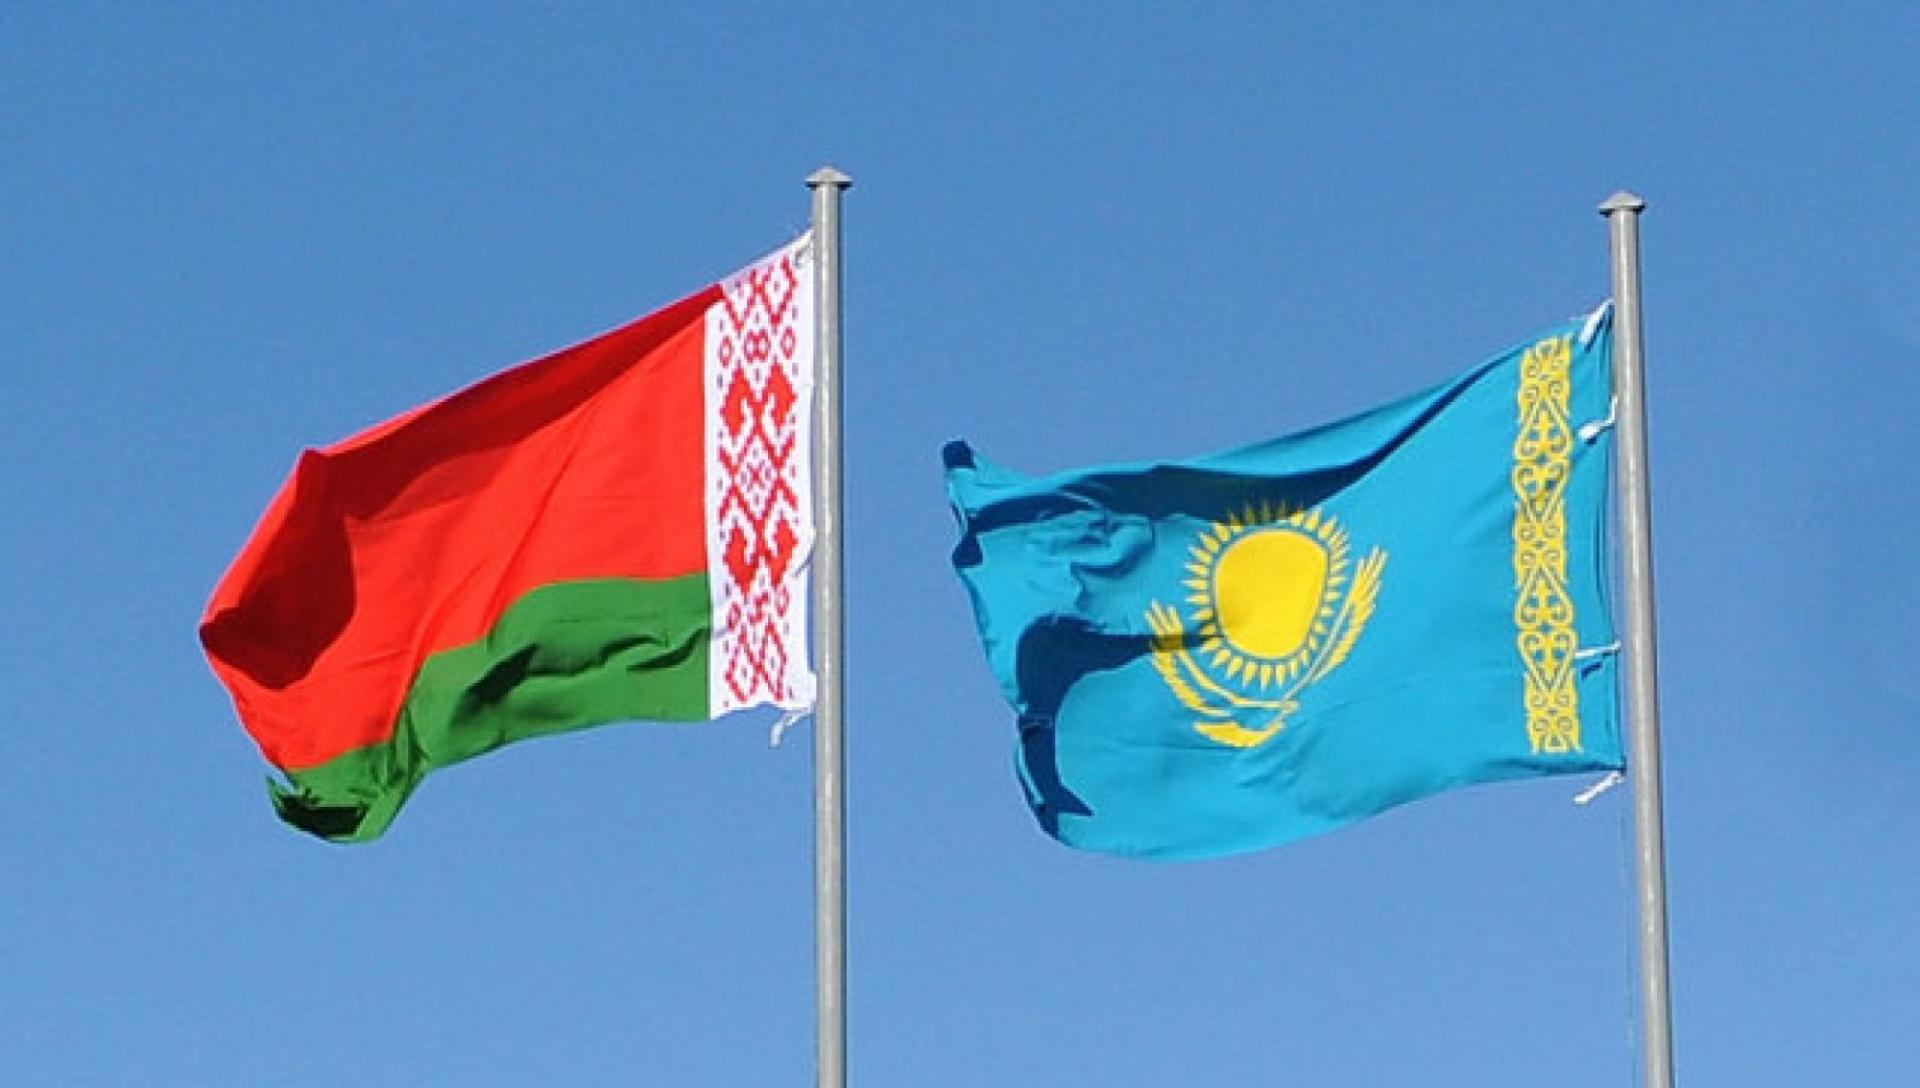 Product exports from Belarus to Kazakhstan increase in 1Q2020